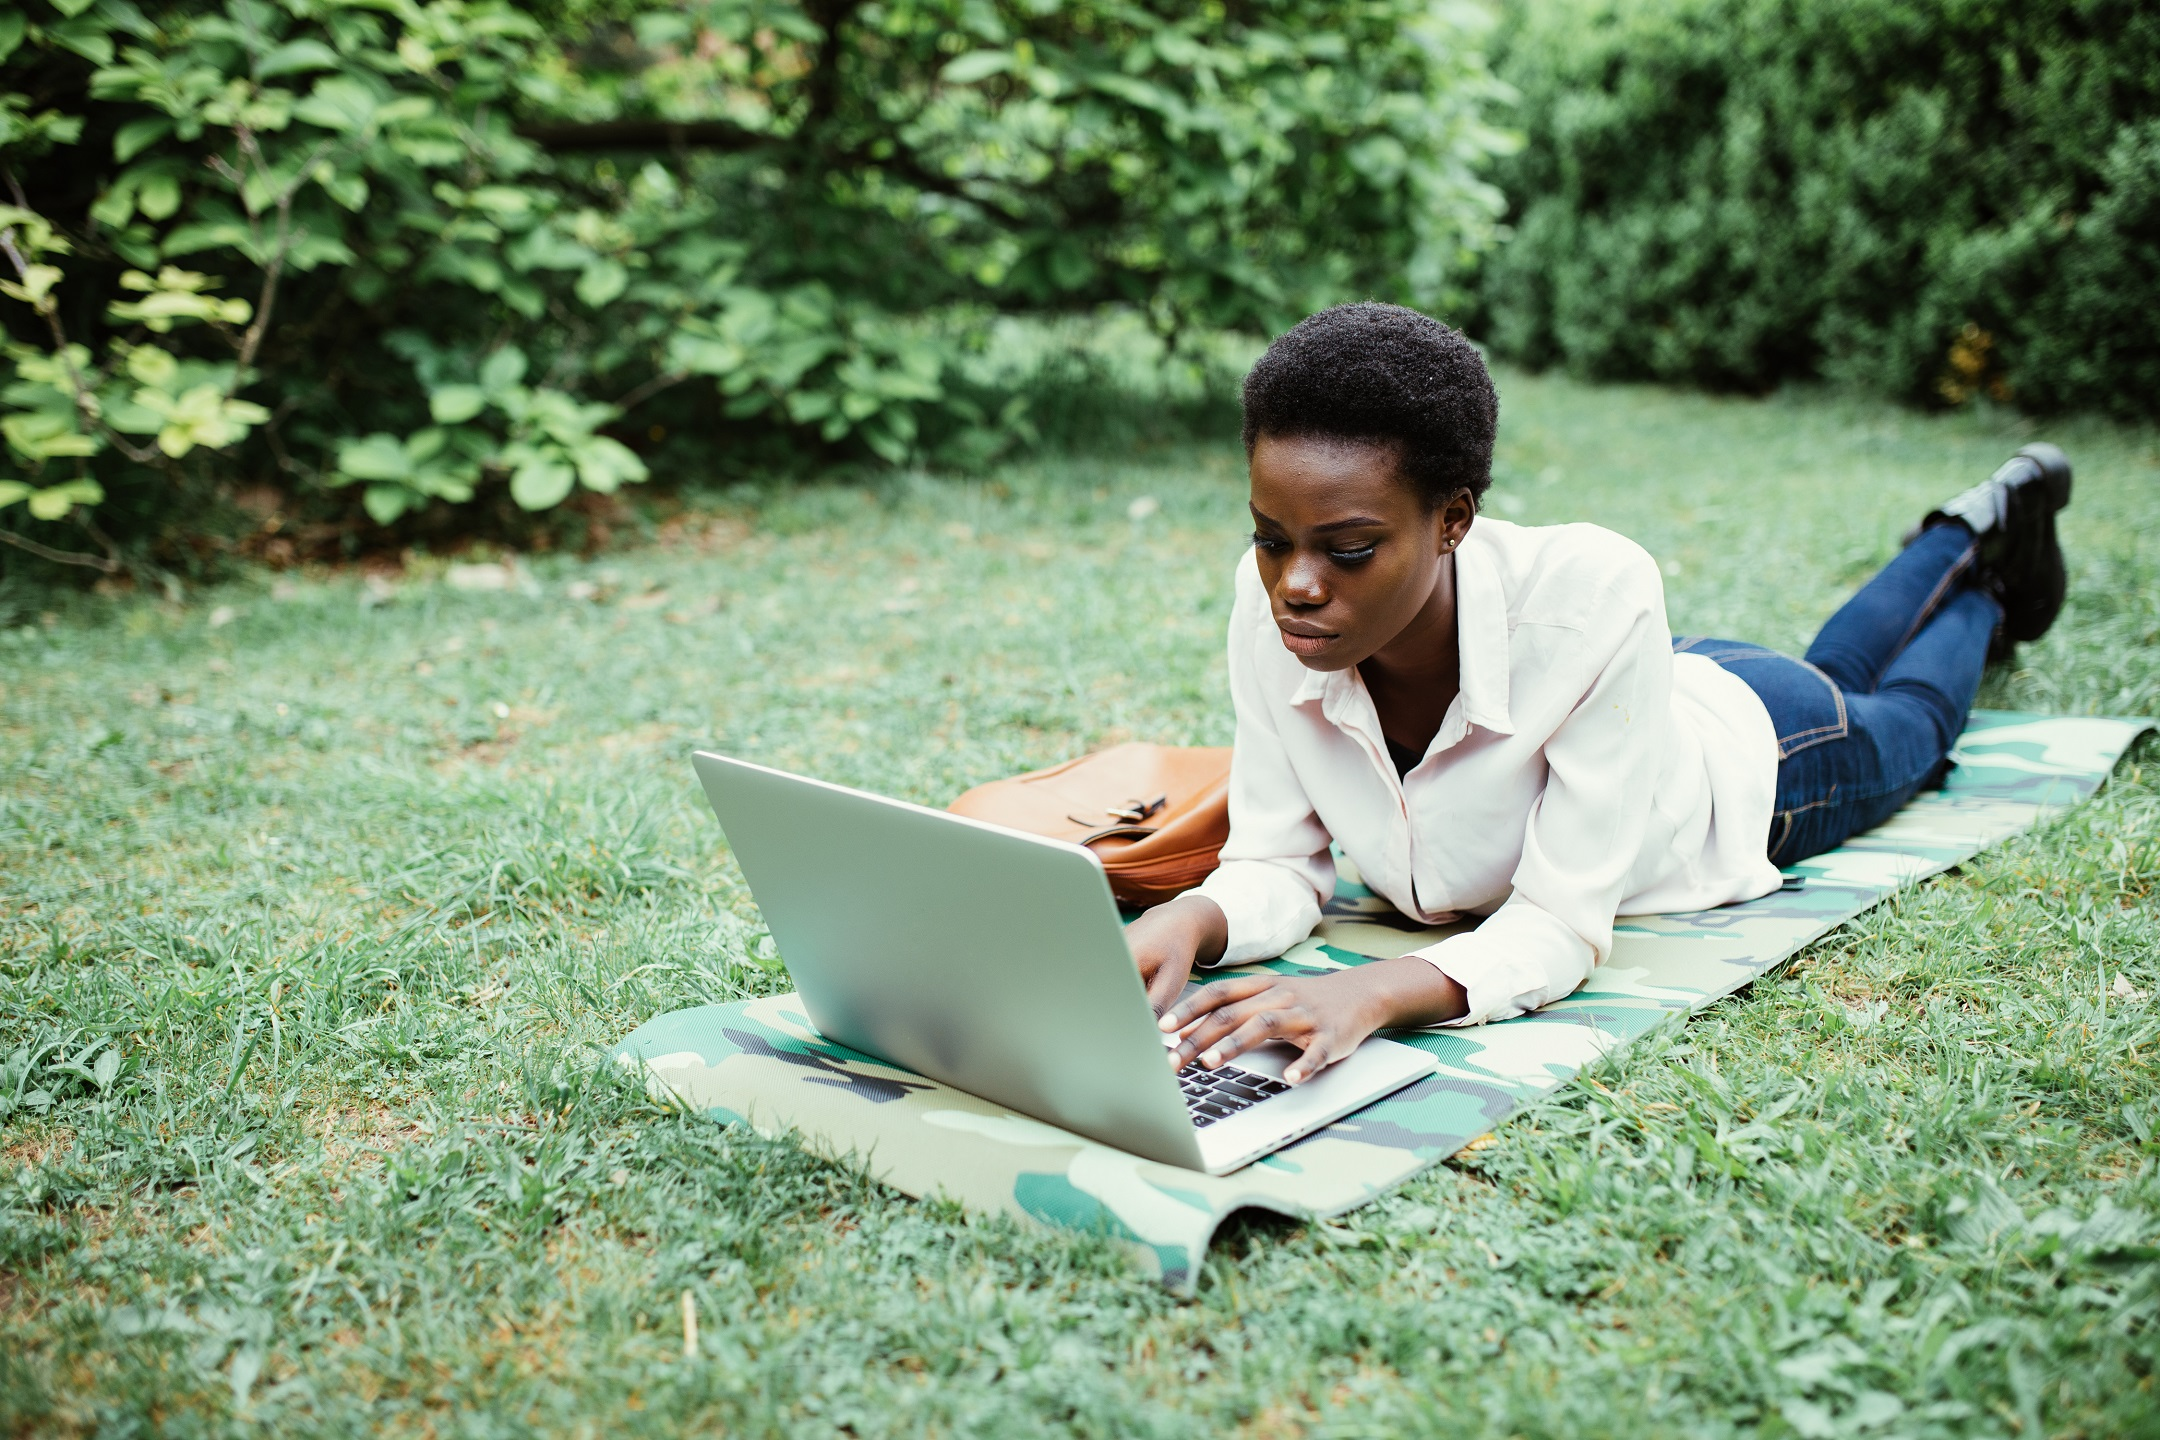 Afro american college student lying down on the grass working on laptop at campus. University.